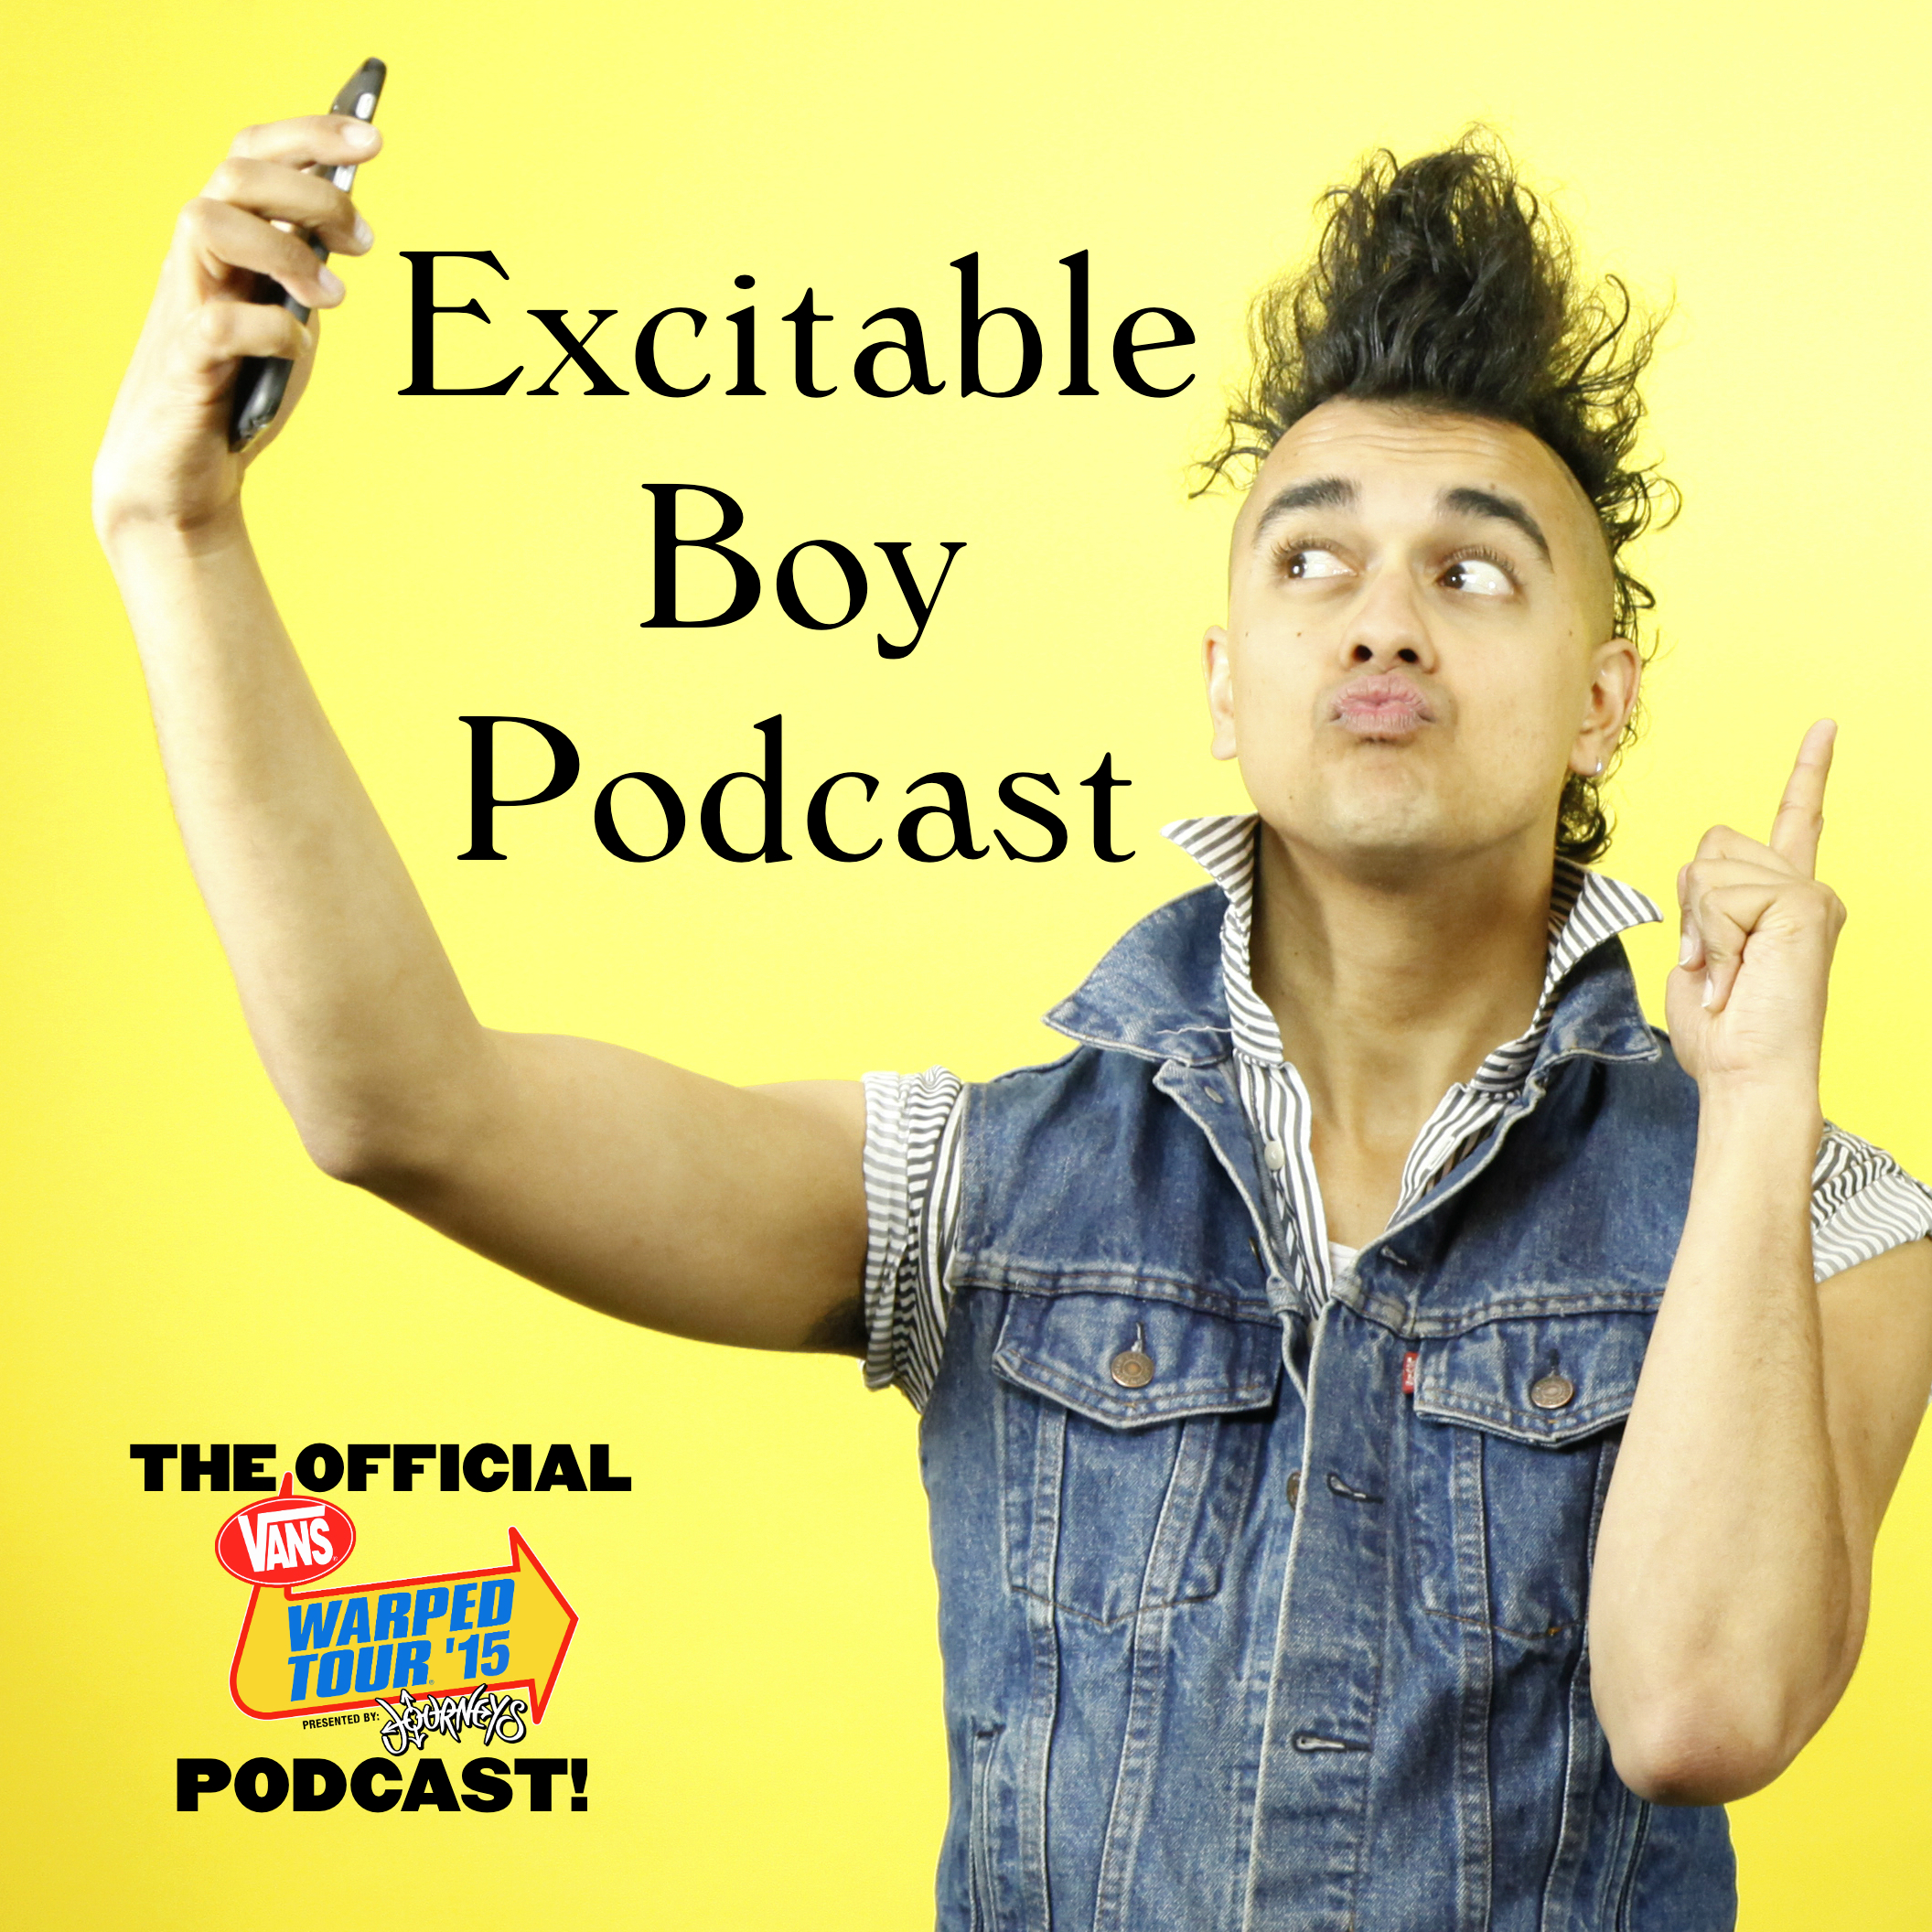 Excitable Boy Podcast